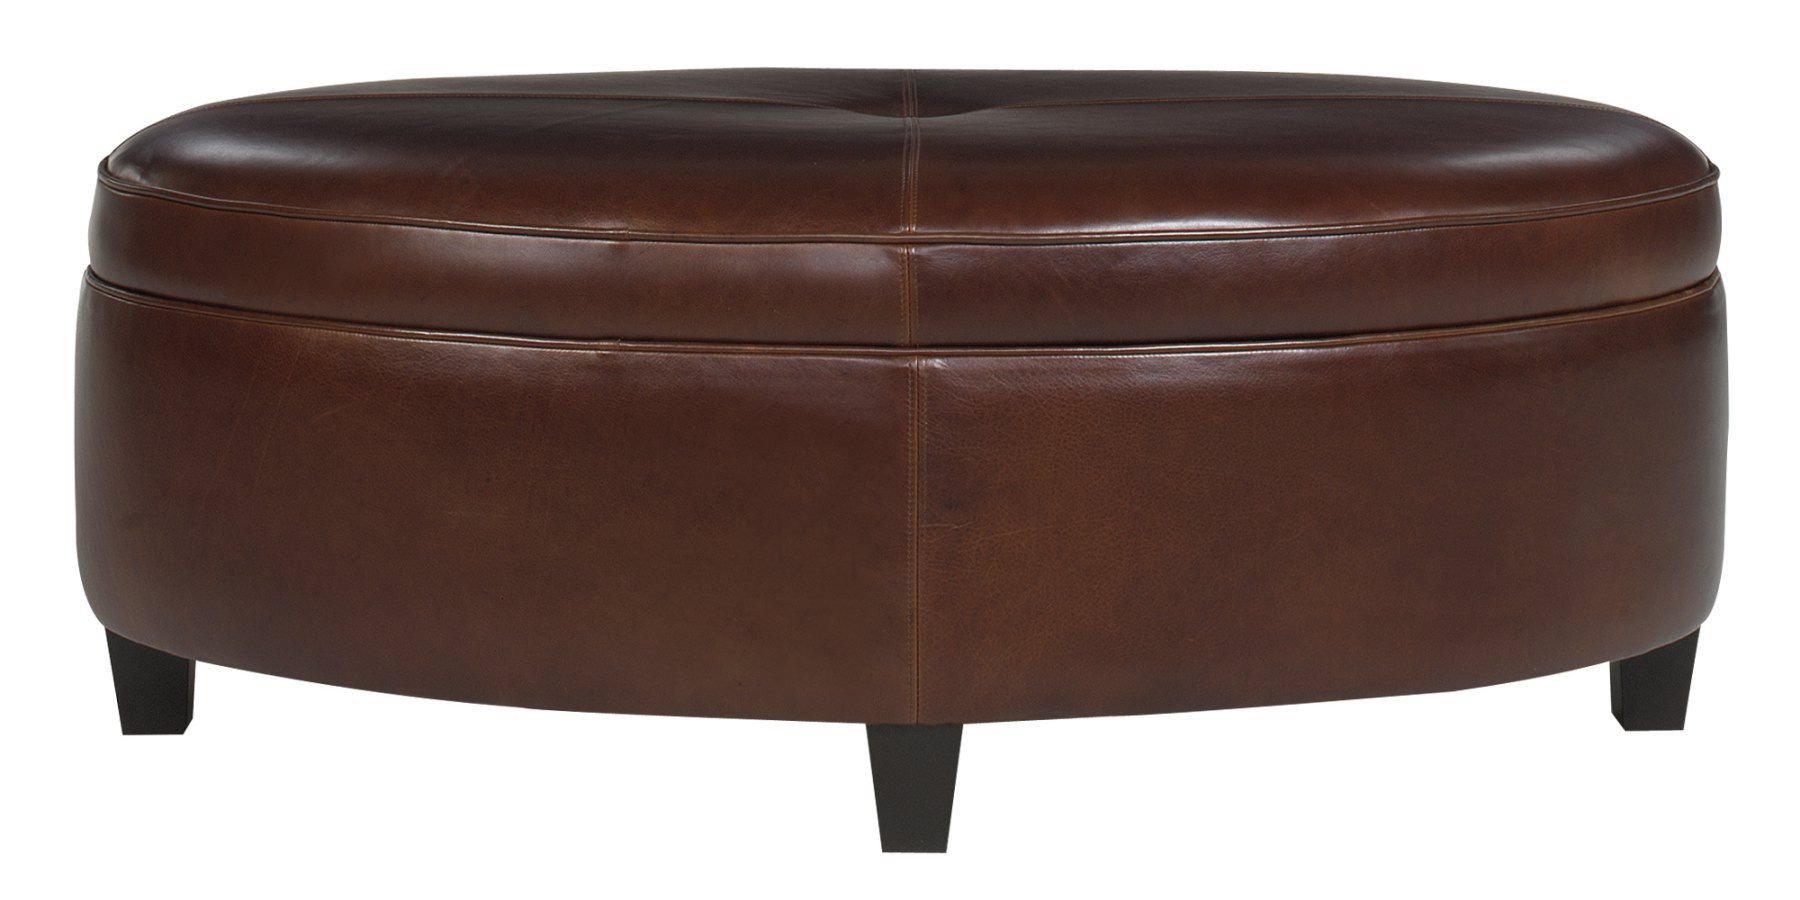 Avery Oval Leather Storage Coffee Table Ottoman Leather Coffee